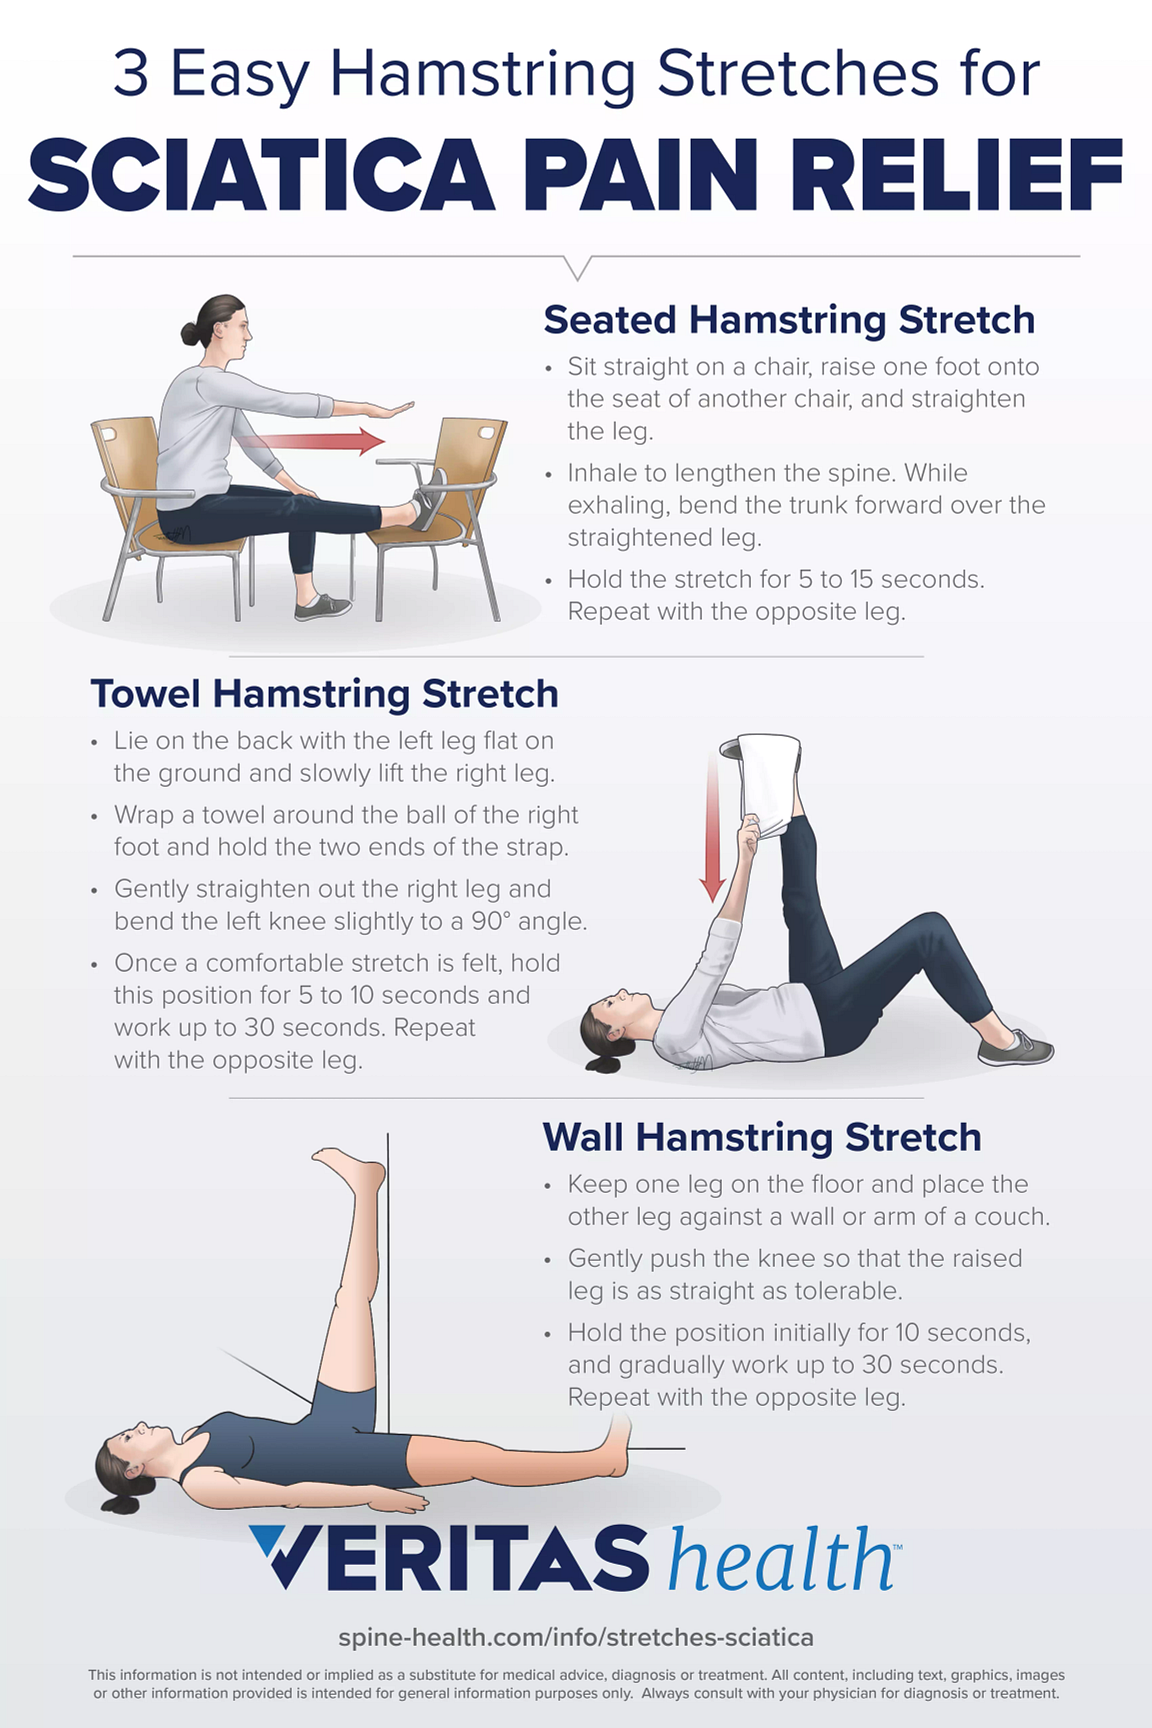 How To Exercise With Sciatica